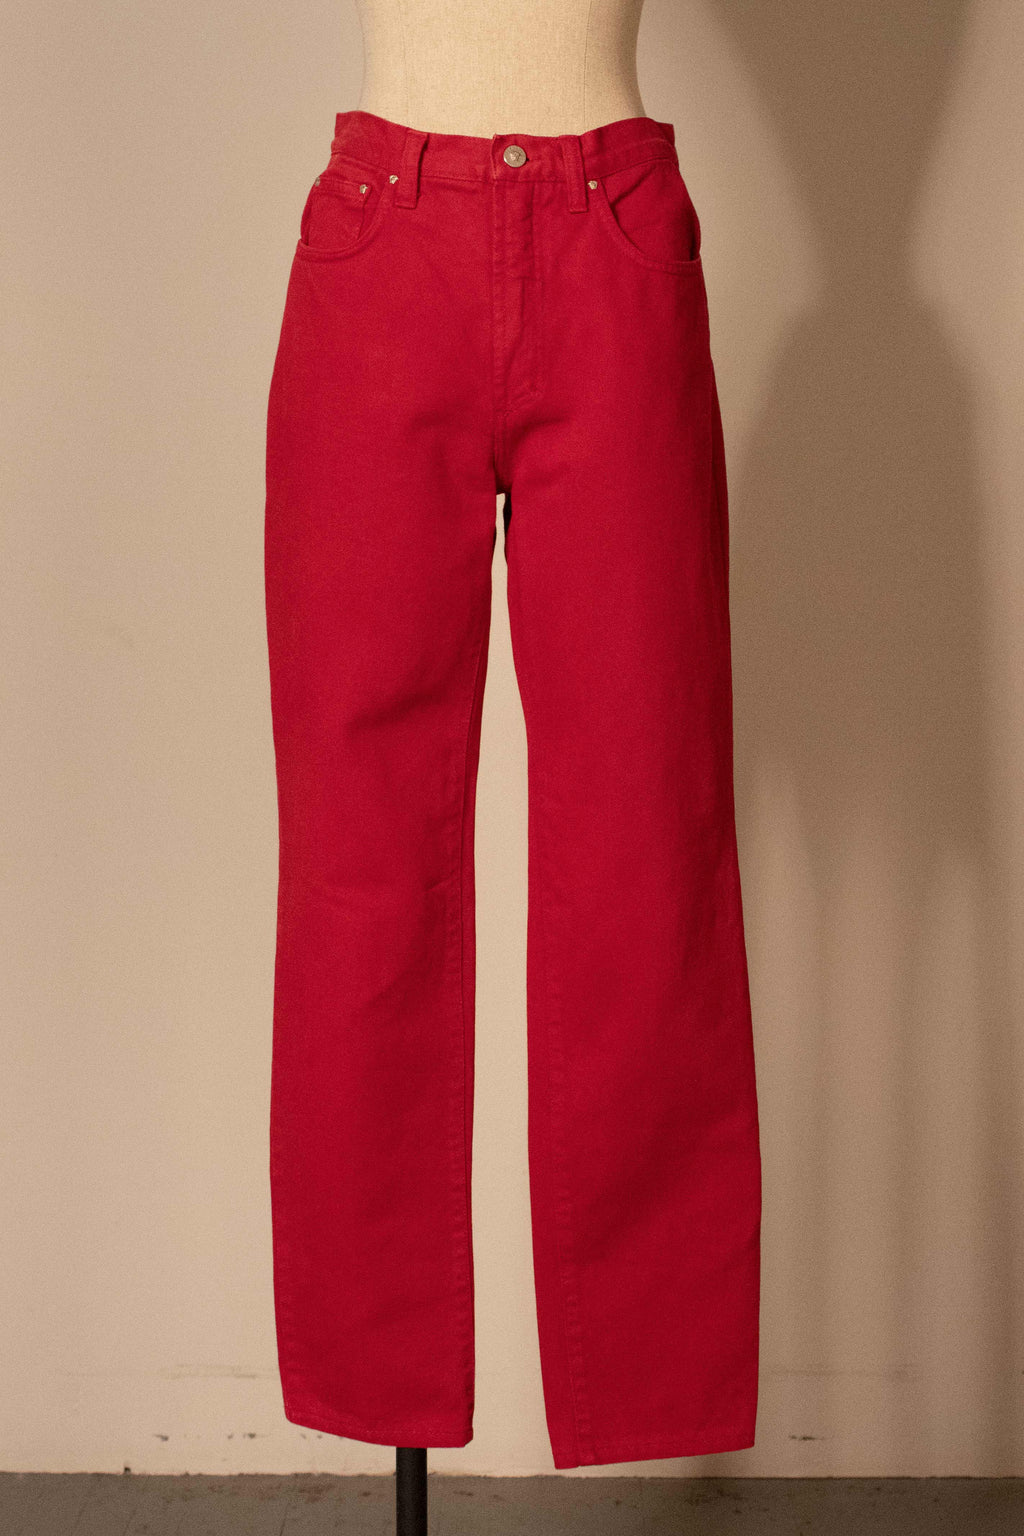 Versace (Jeans Couture) red denim jeans